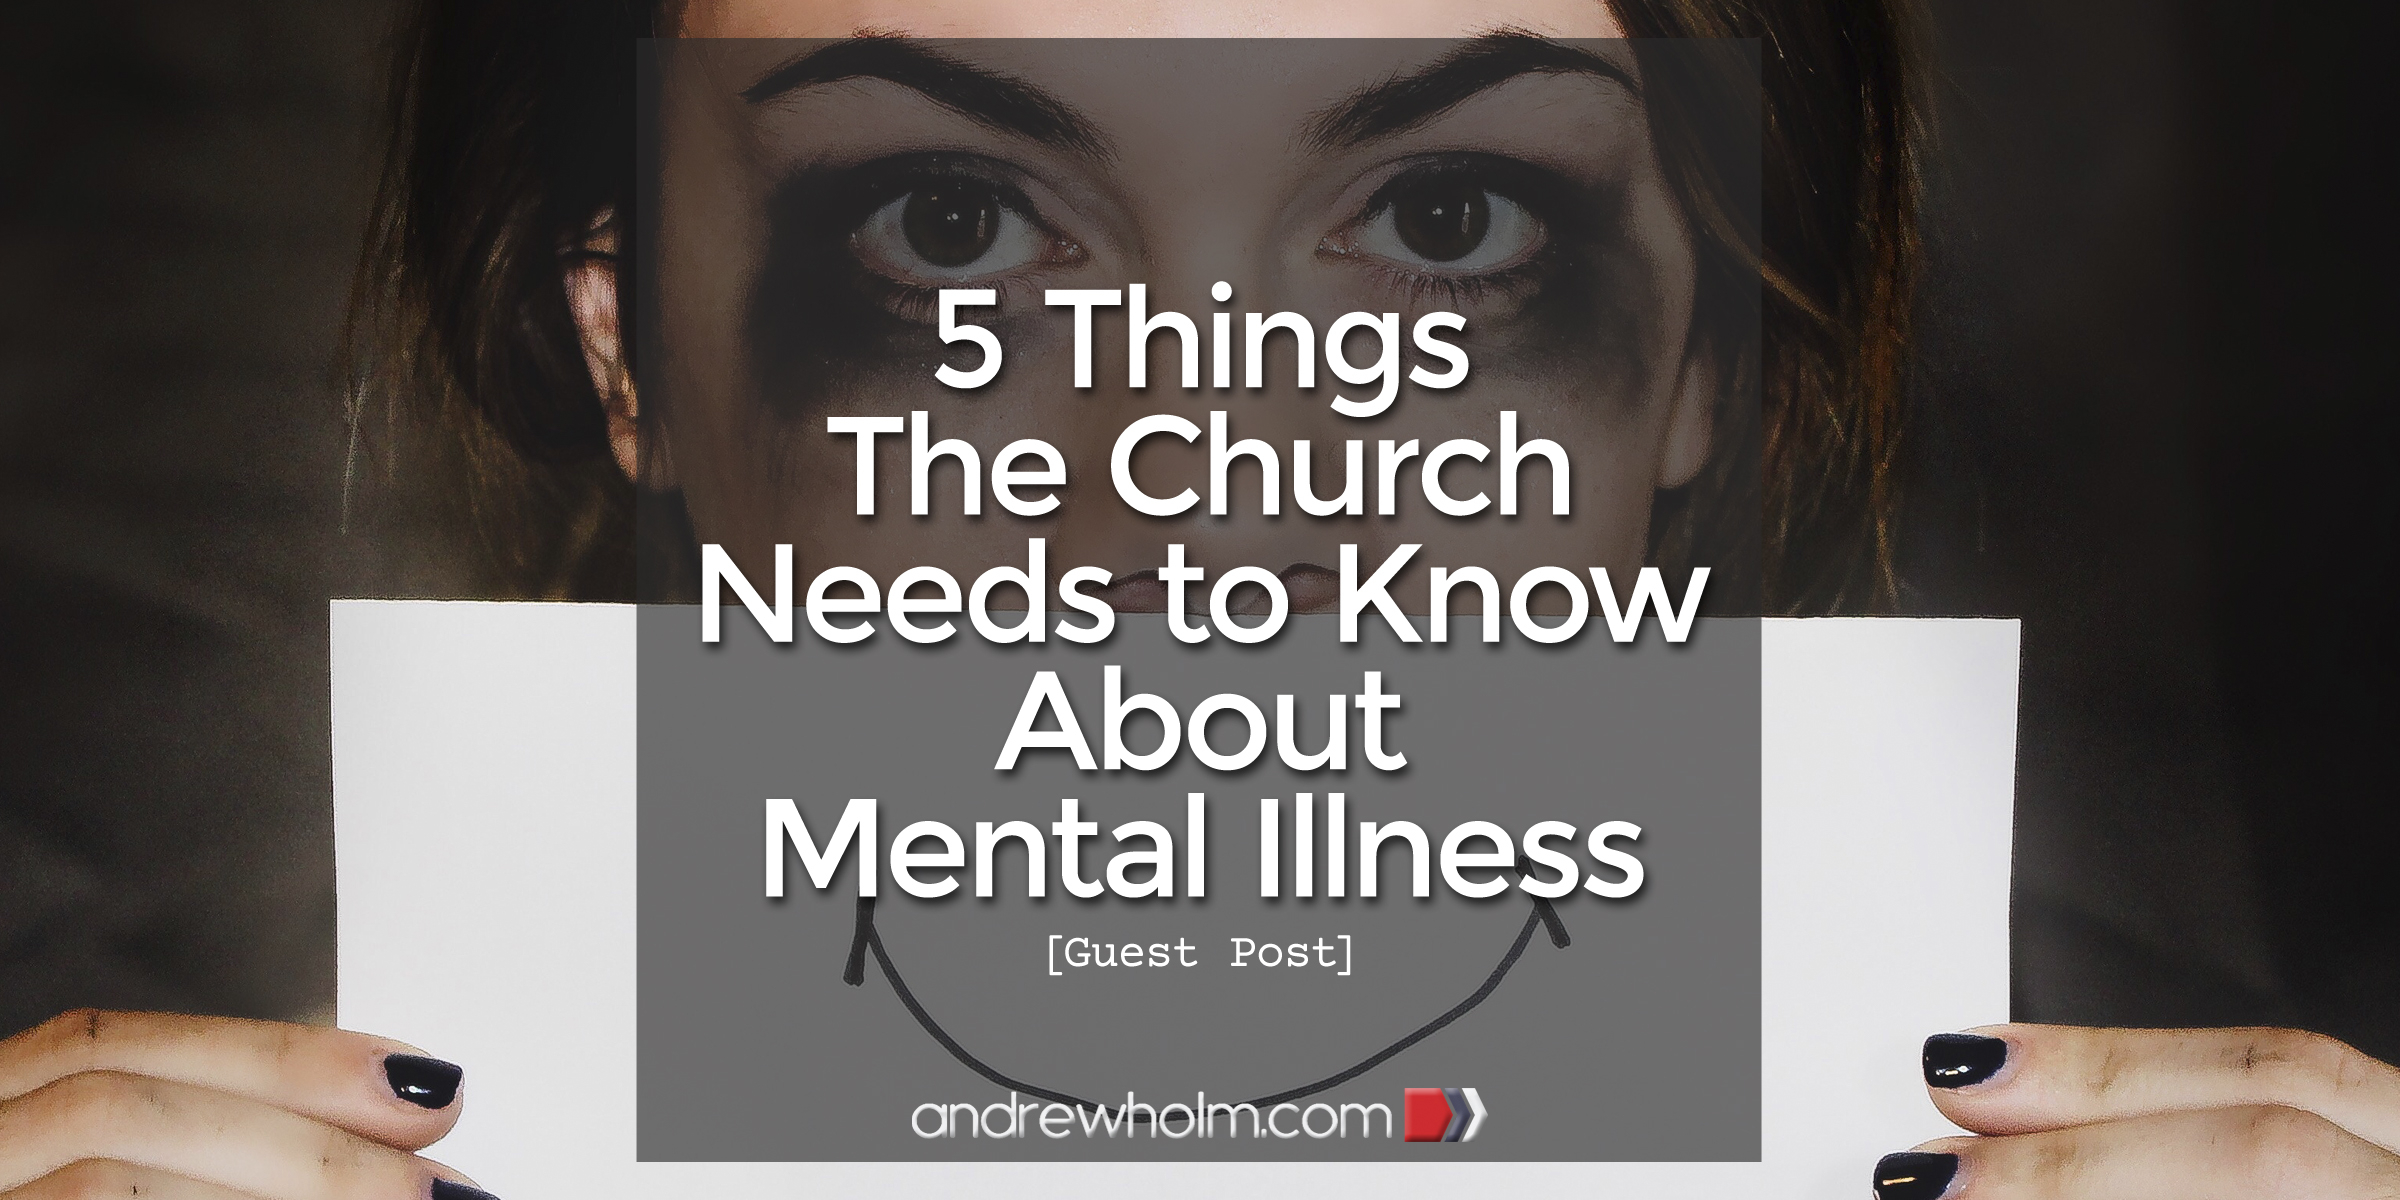 5 Things the Church Needs to Know About Mental Illness